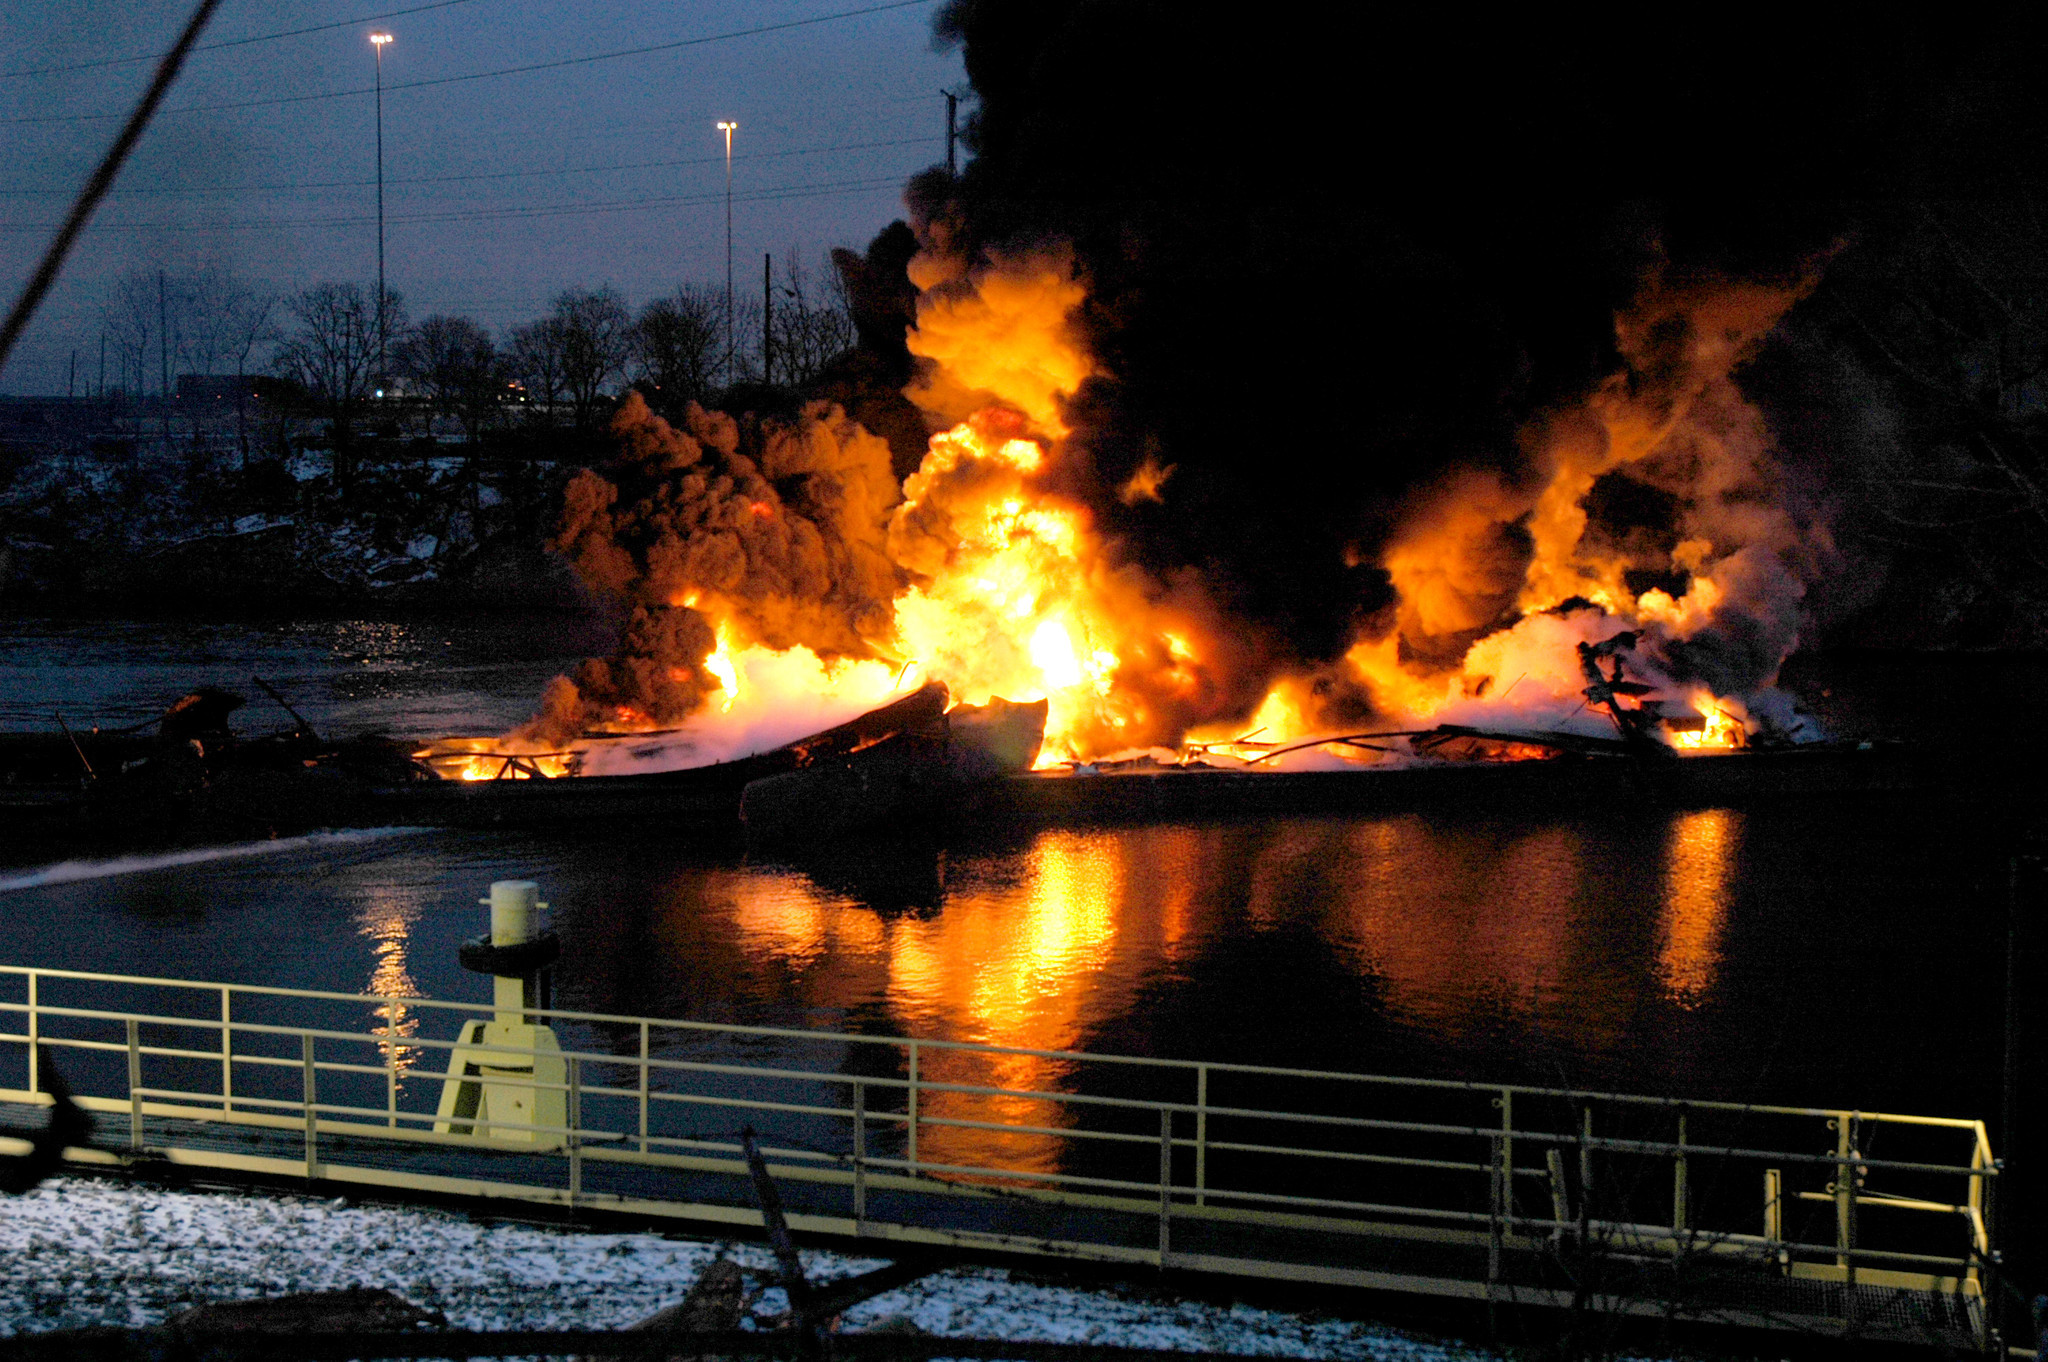 Federal authorities are investigating Egan and Egan Marine after a barge explosion that killed a 29-year old worker and released thousands of gallons of oil into a Chicago shipping canal.